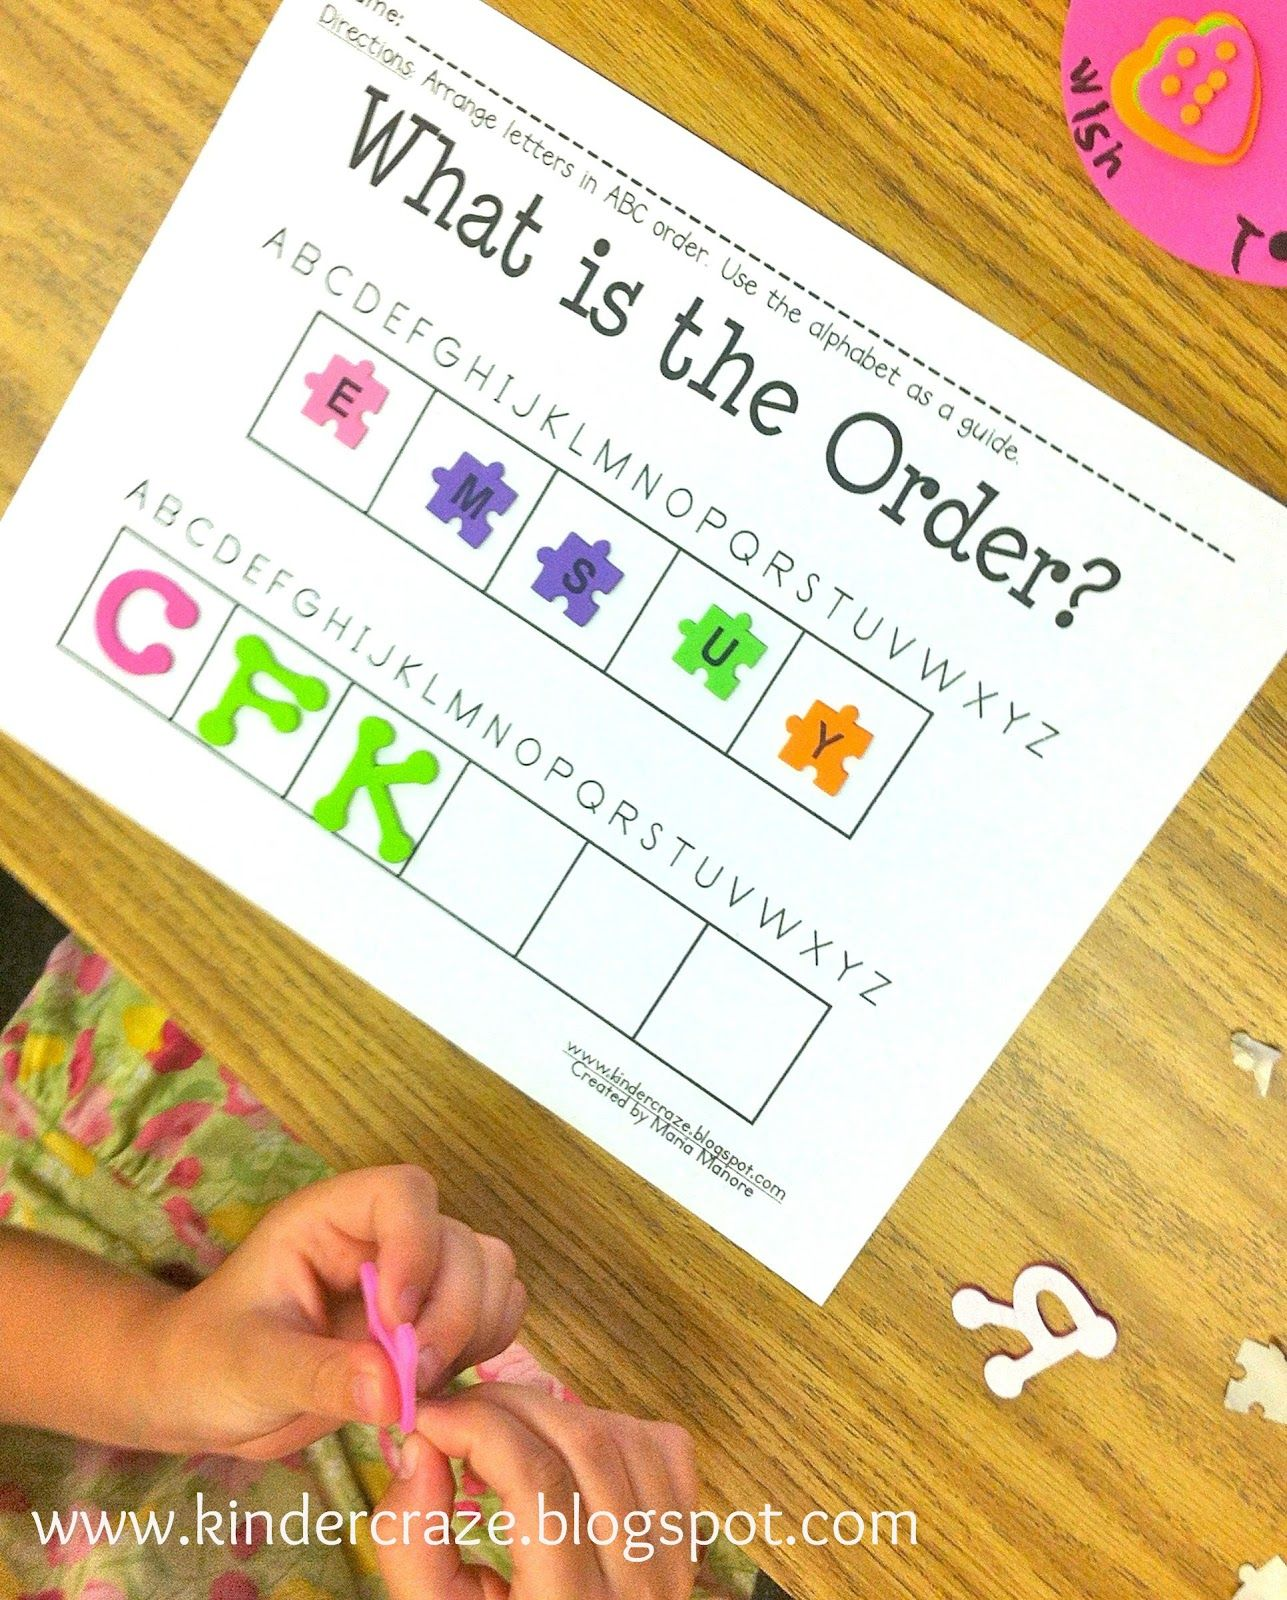 ABC Order Use foam letters to introduce ABC order. Blog post includes a free download of this activity.